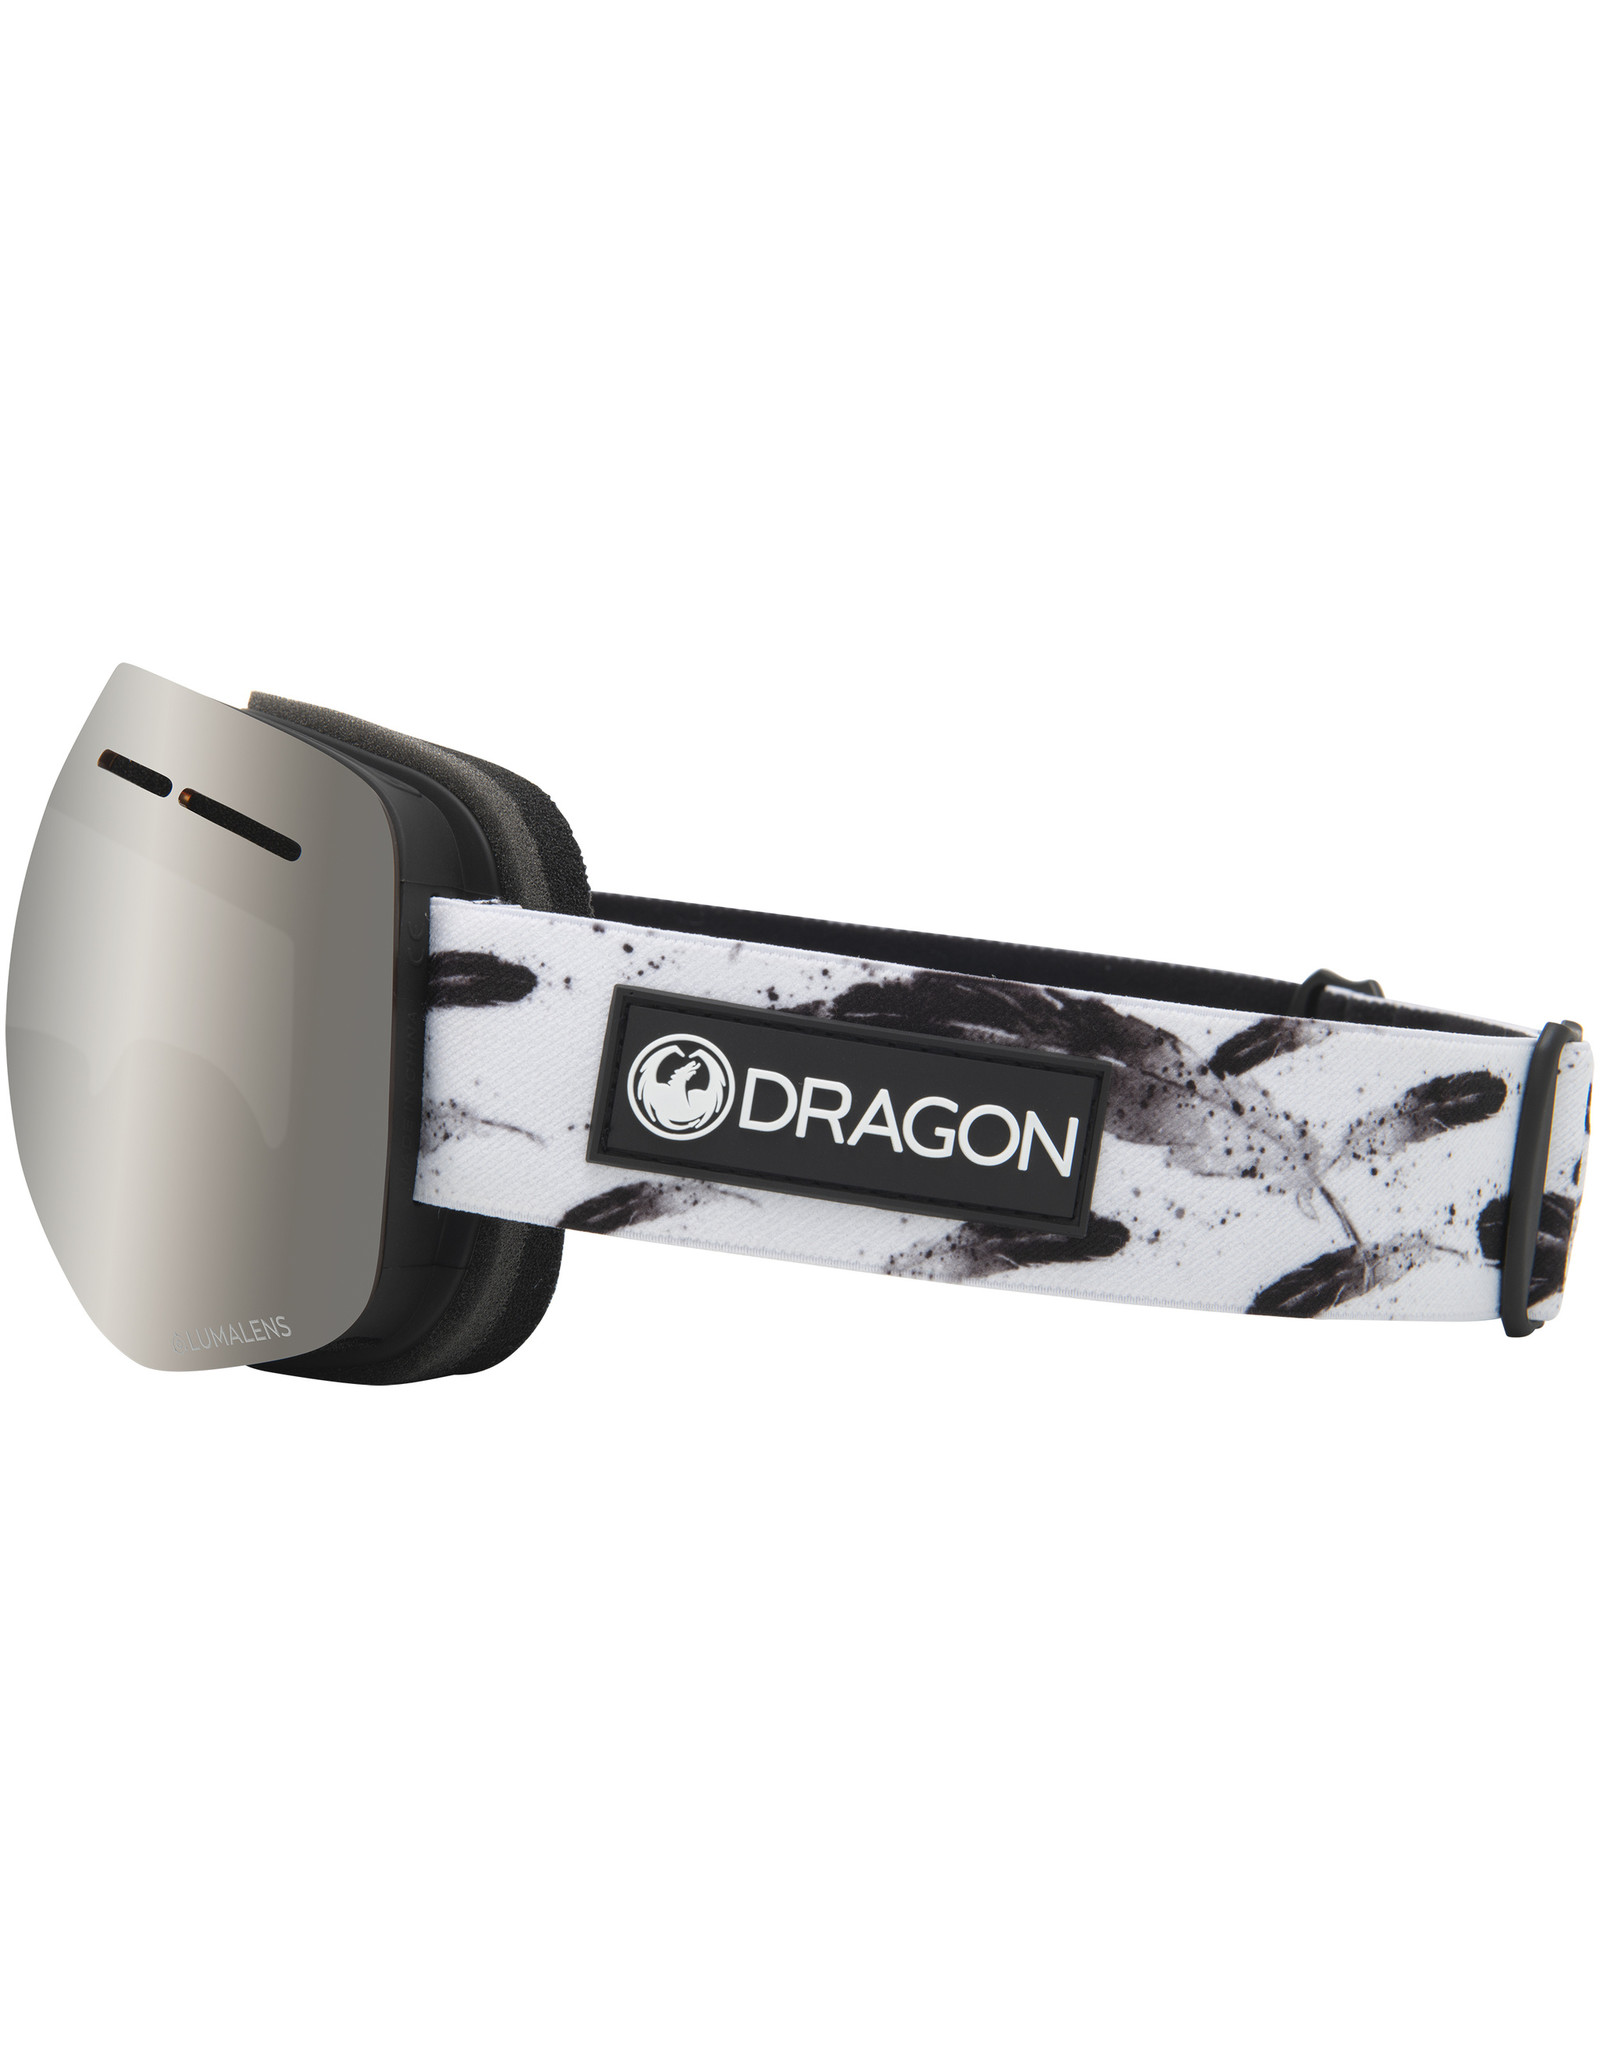 DRAGON DRAGON - X1S FEATHER - SILVER ION - 19/20